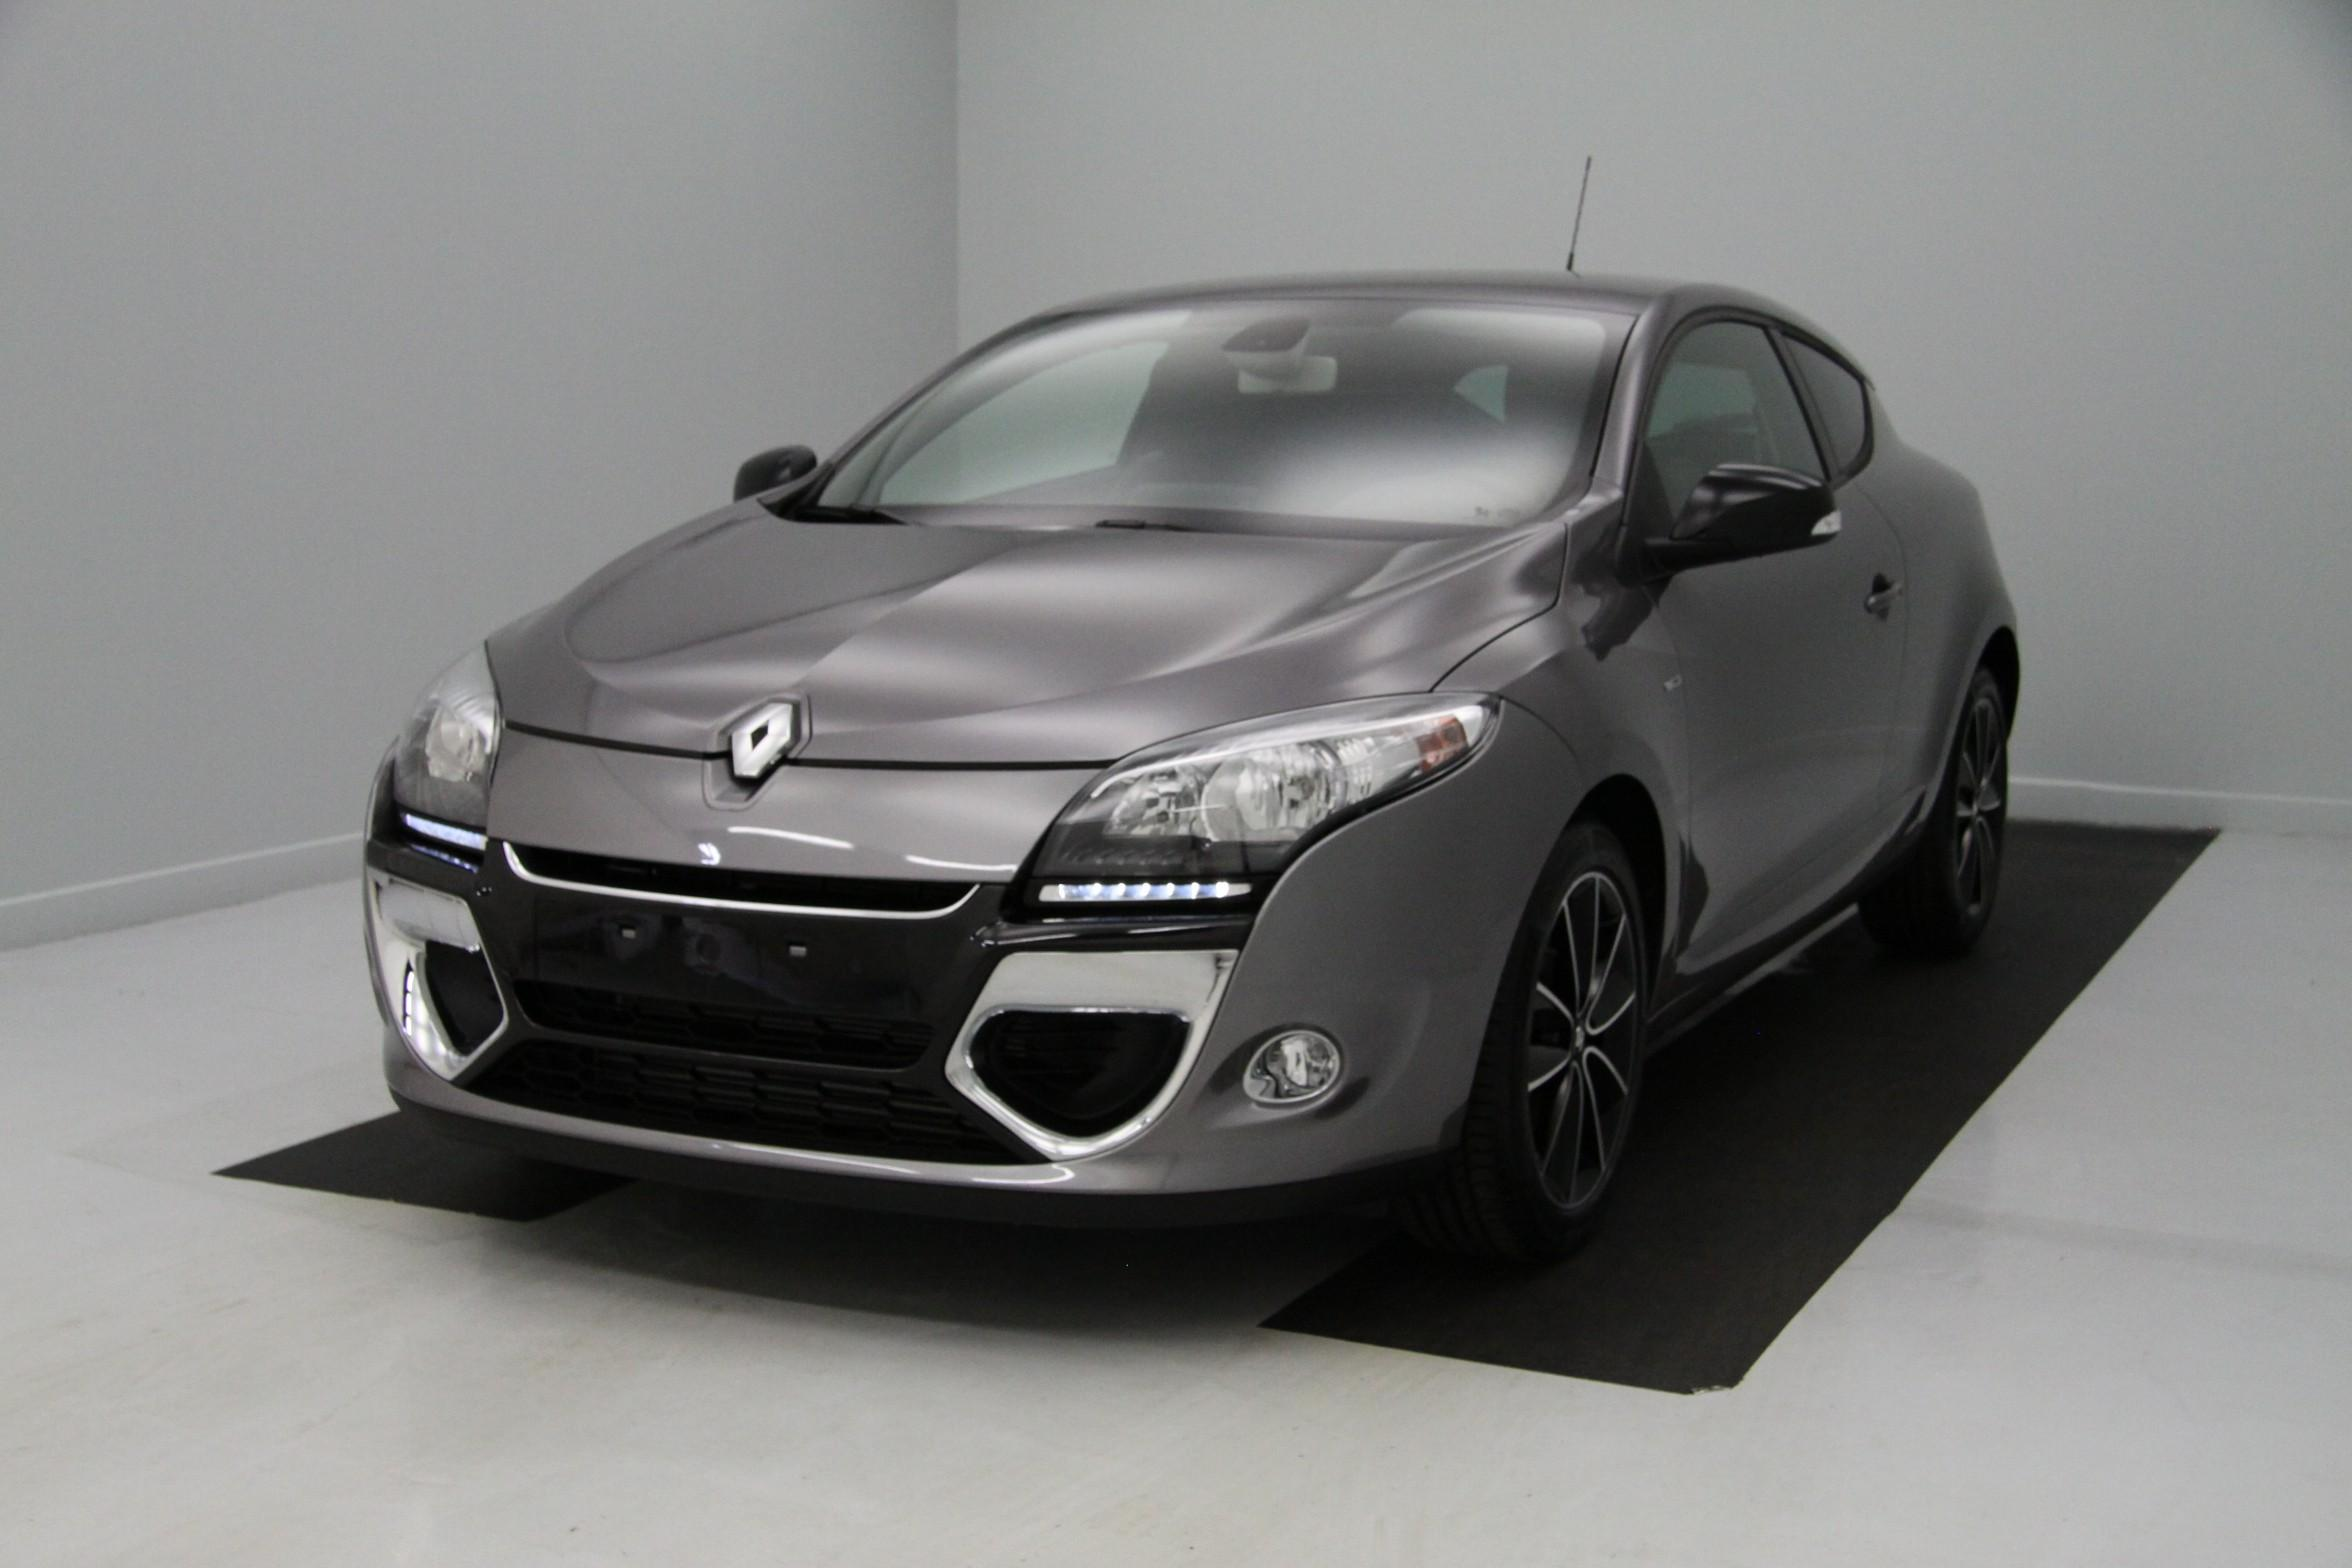 nouvelle renault megane cabrio 2014 autos post. Black Bedroom Furniture Sets. Home Design Ideas